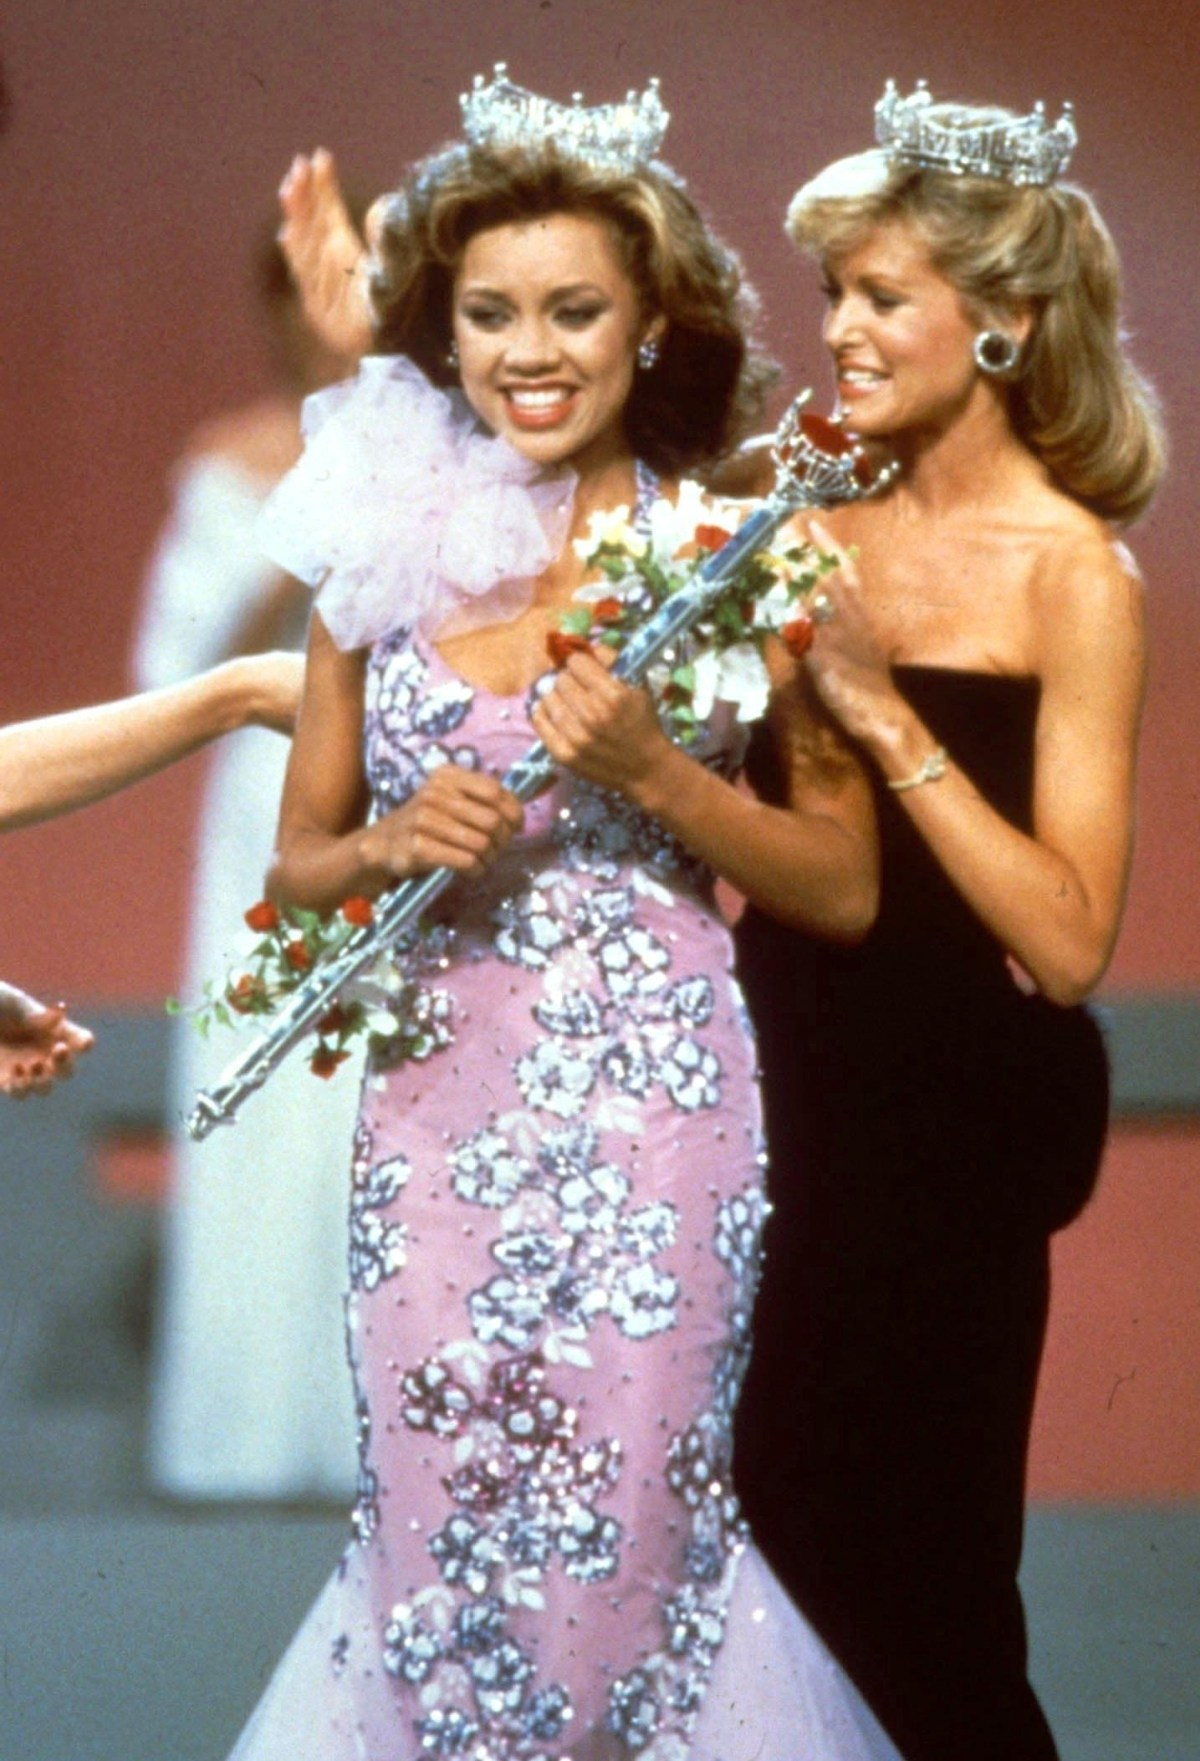 Vanessa Williams became the first African American to be crowned Miss America in 1984